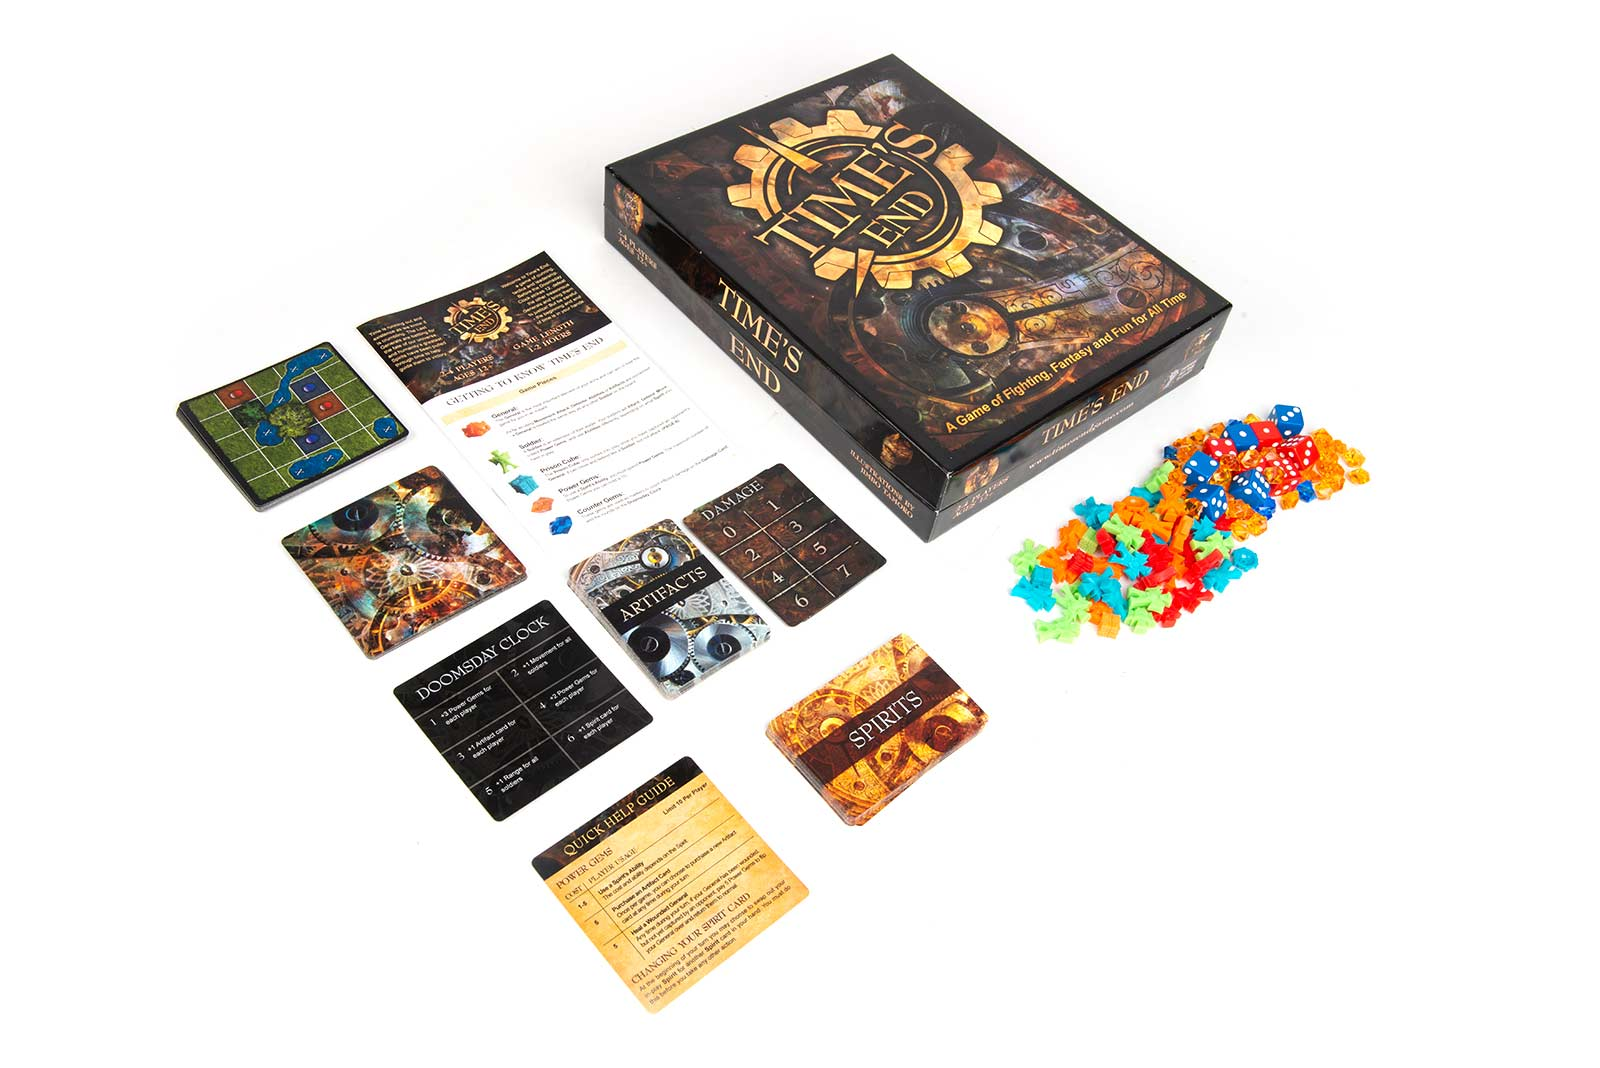 times-end-board-game-box-contents.jpg